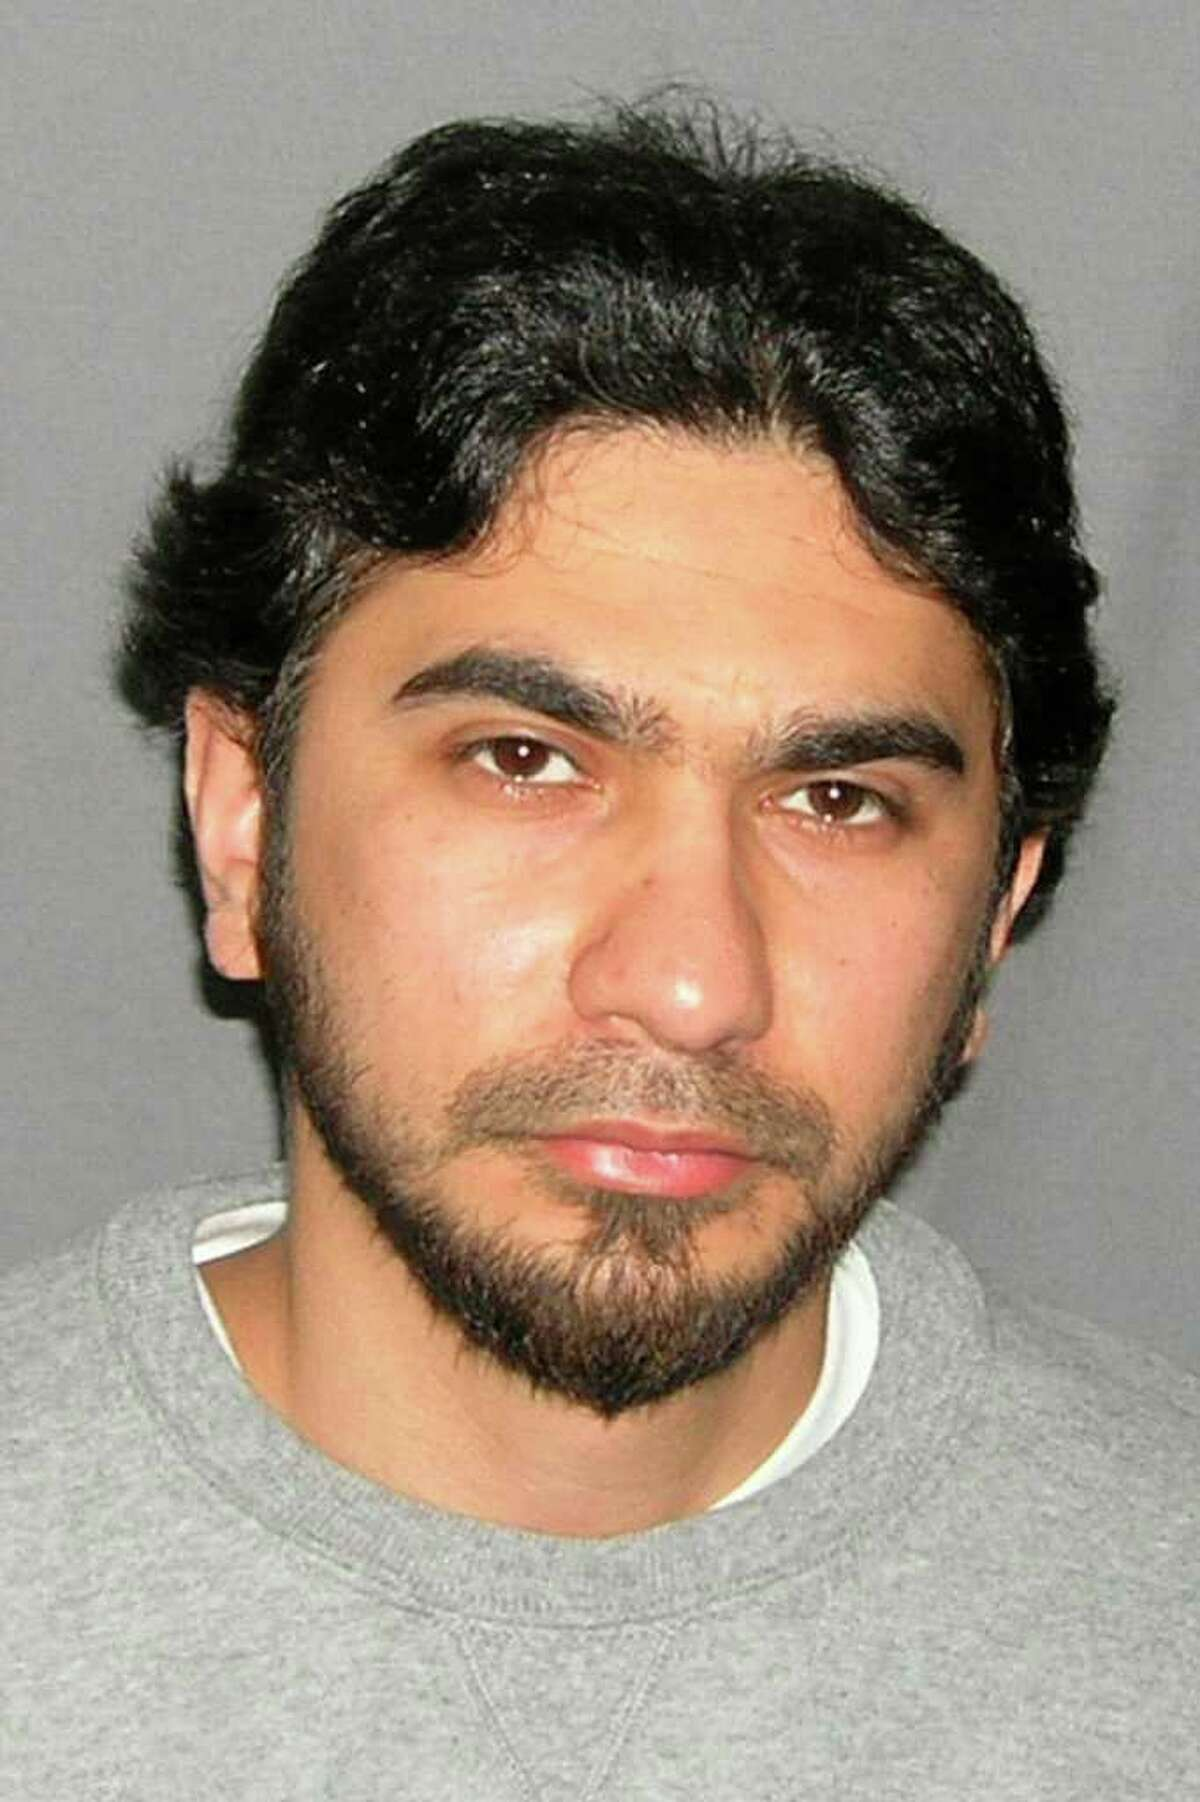 FILE - This undated file photo originally released by the U.S. Marshal's Service on May 19, 2010, shows Faisal Shahzad.(AP Photo/U.S. Marshals Service, File)